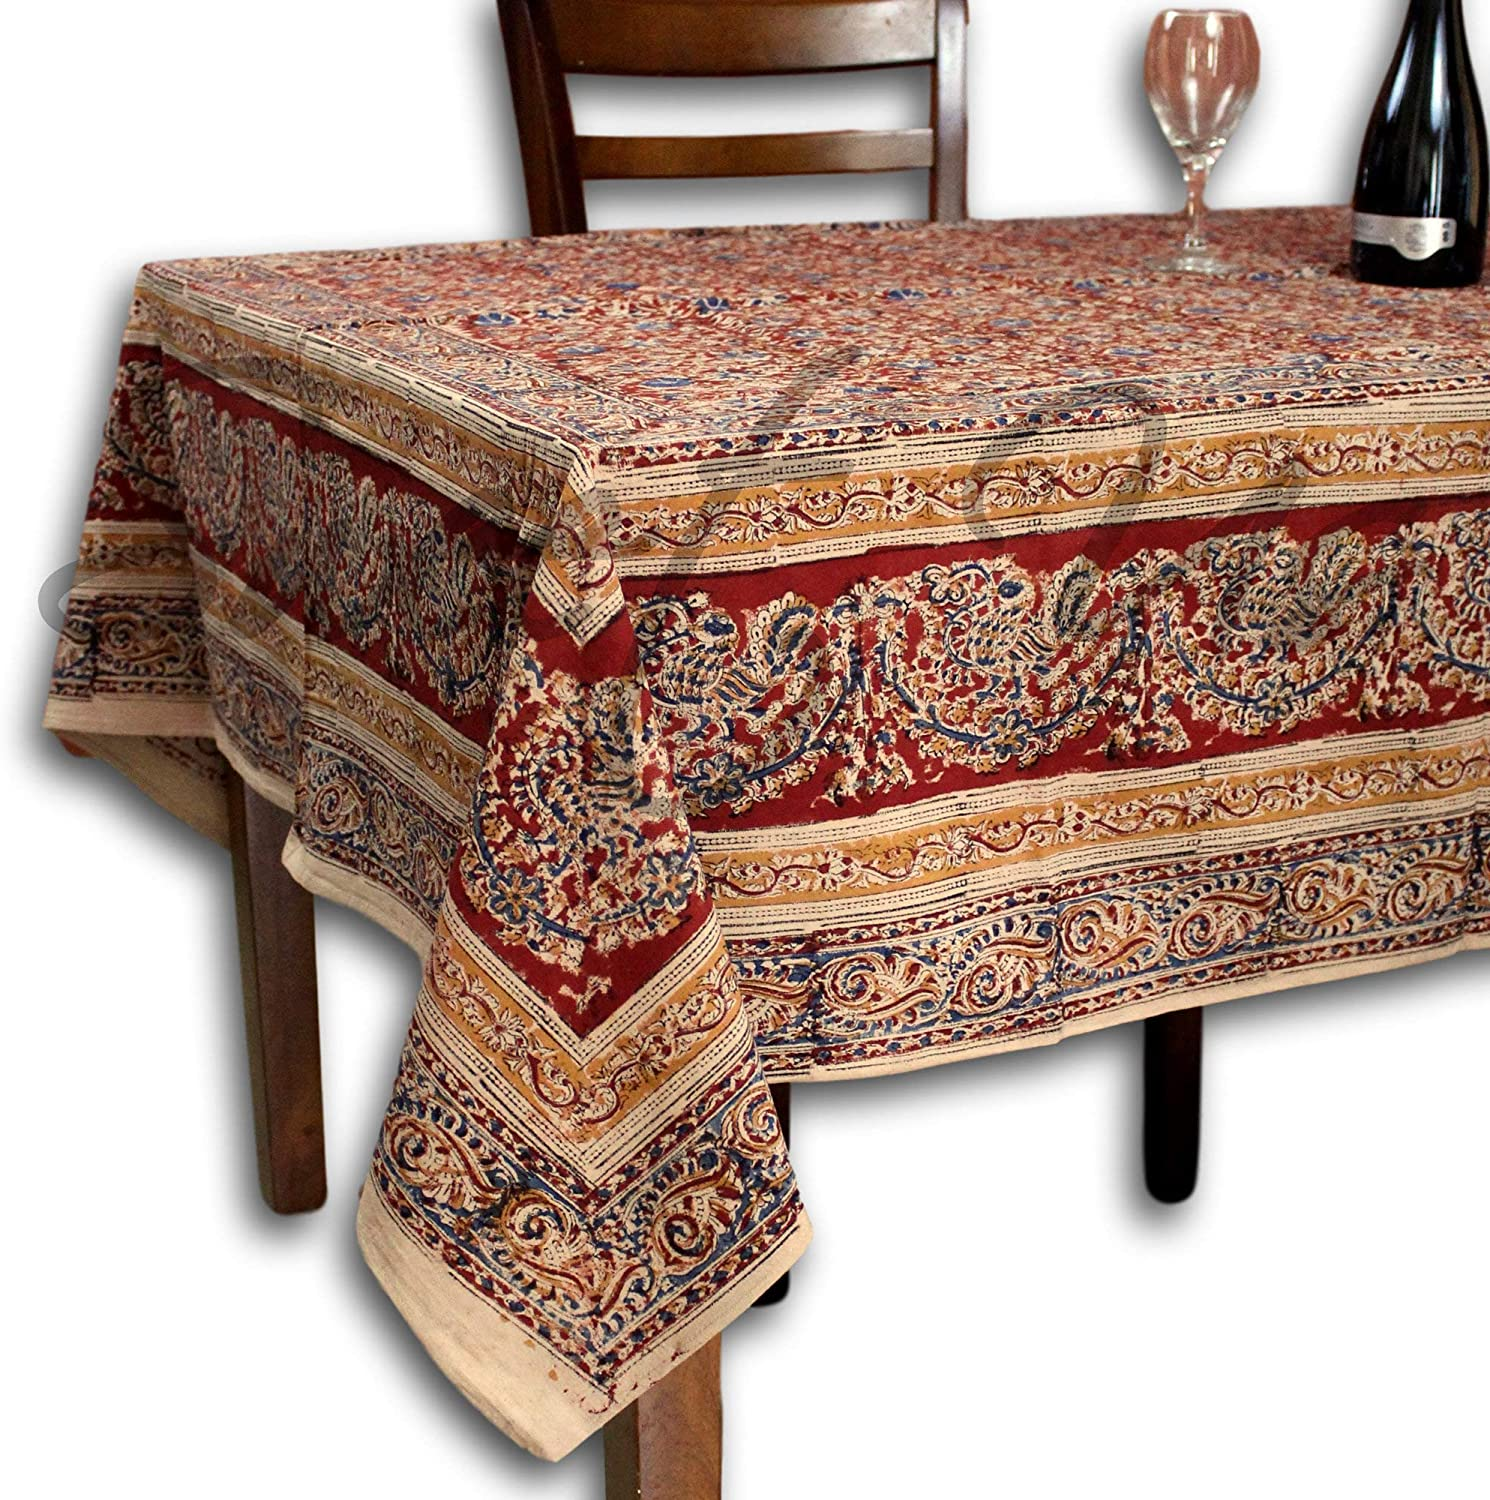 Block Print Red Square Tablecloth 60x60 inches for Dining and Kitchen Vegetabe Dye Cotton Floral Table Linen